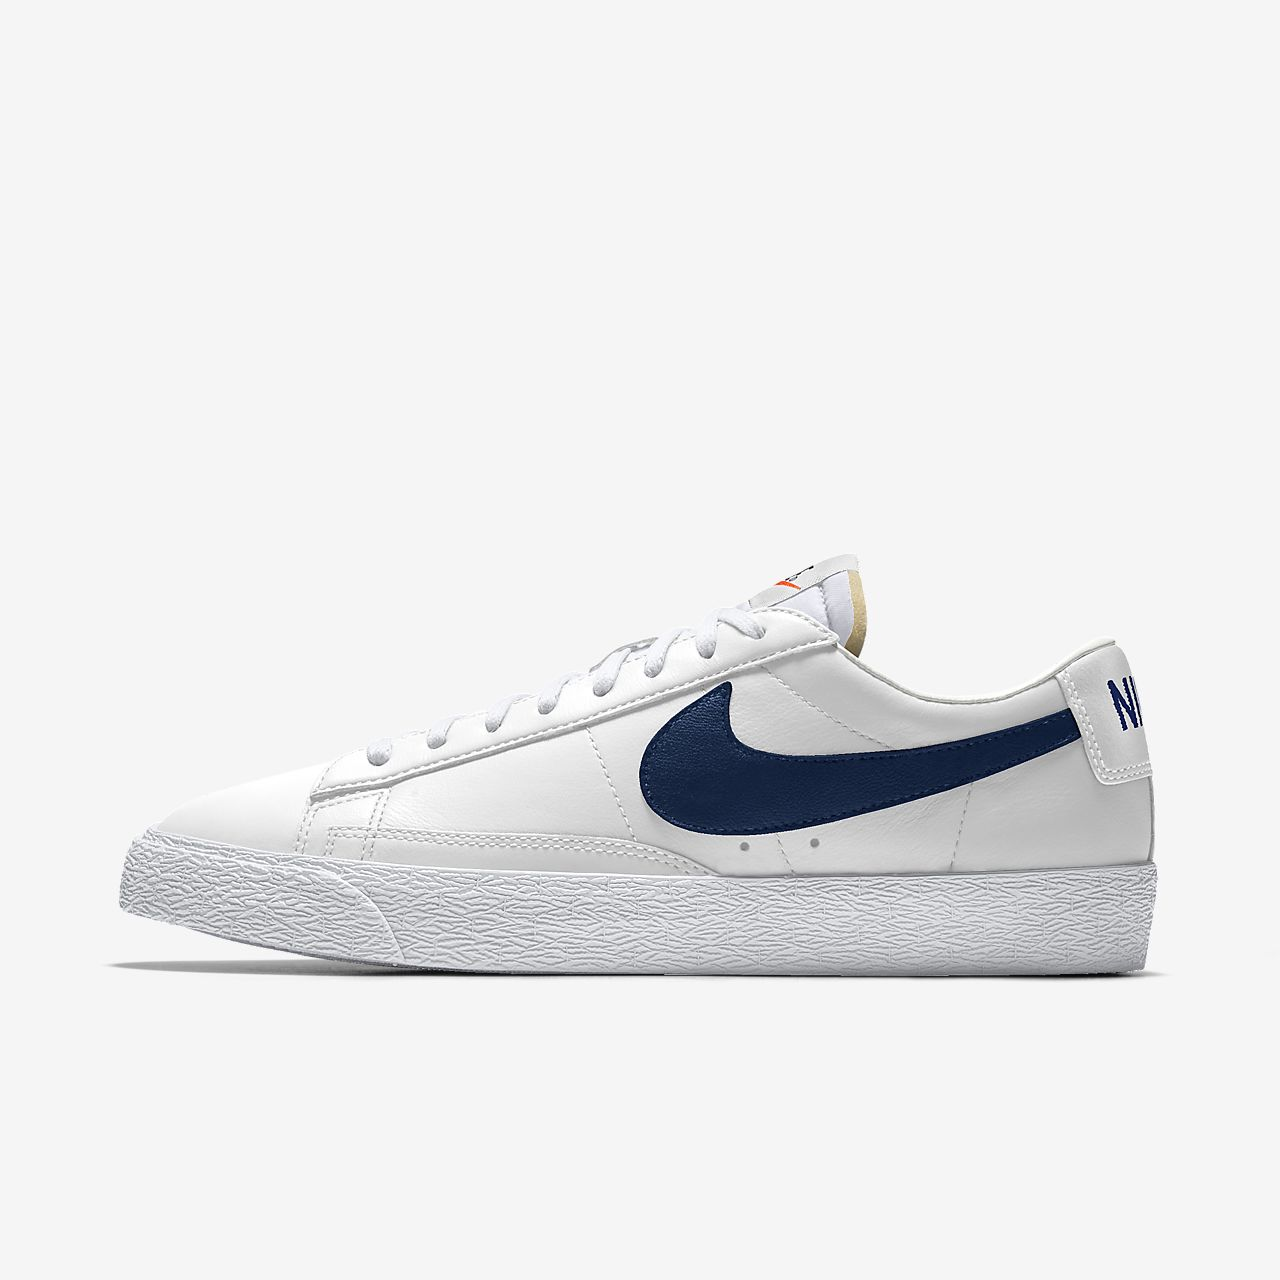 This Version Of The Nike Blazer Low Comes With New Branding